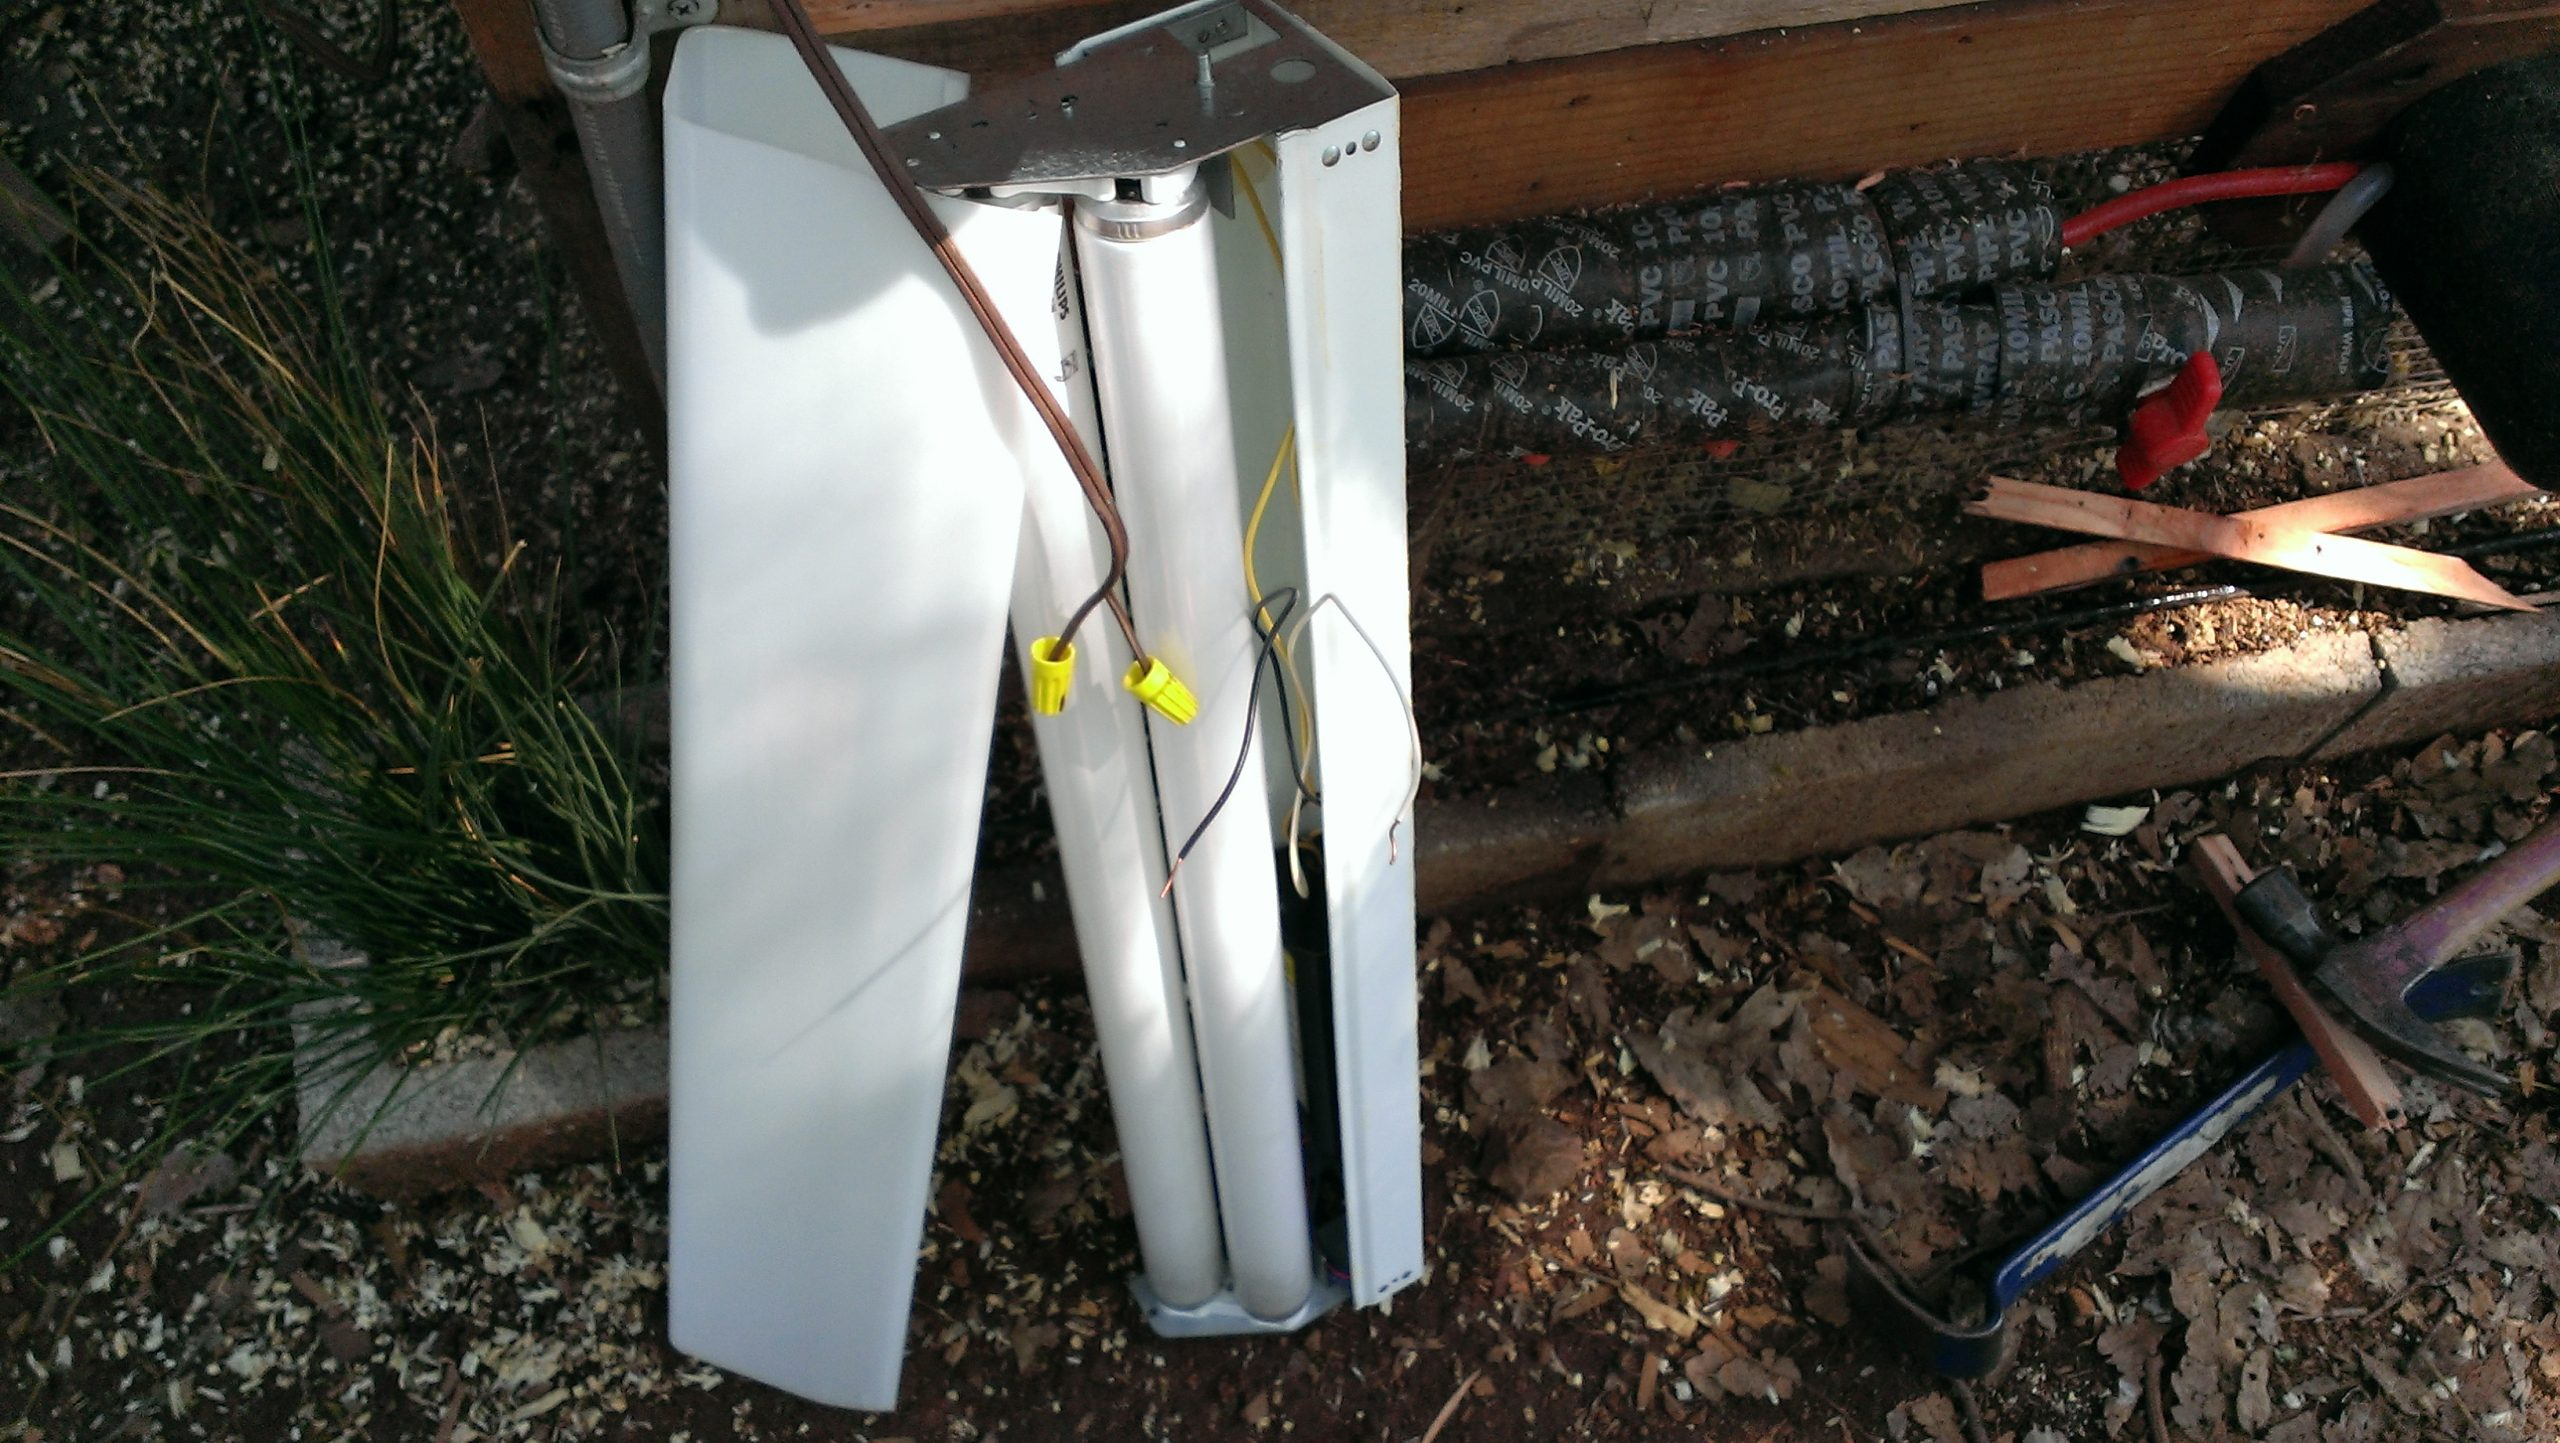 Wiring Chicken Coop Heater (shop light with cover off) - Construction Exterior Pipe Protection (mounted under stairs and above wrapped pipe)